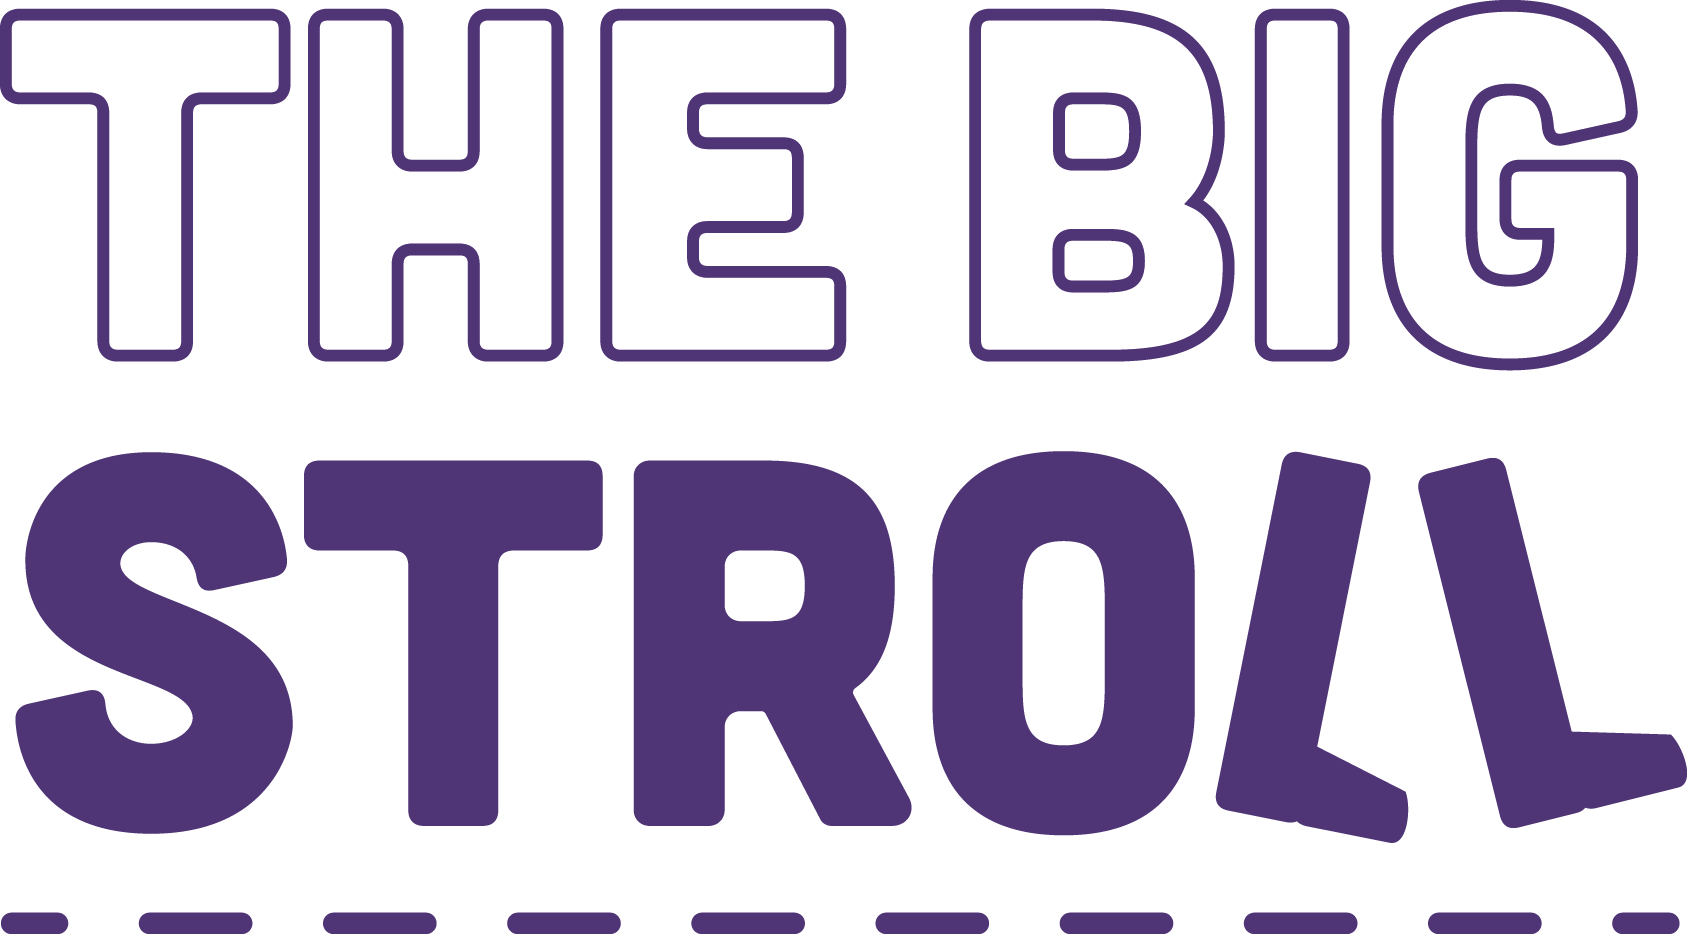 The Big Stroll logo